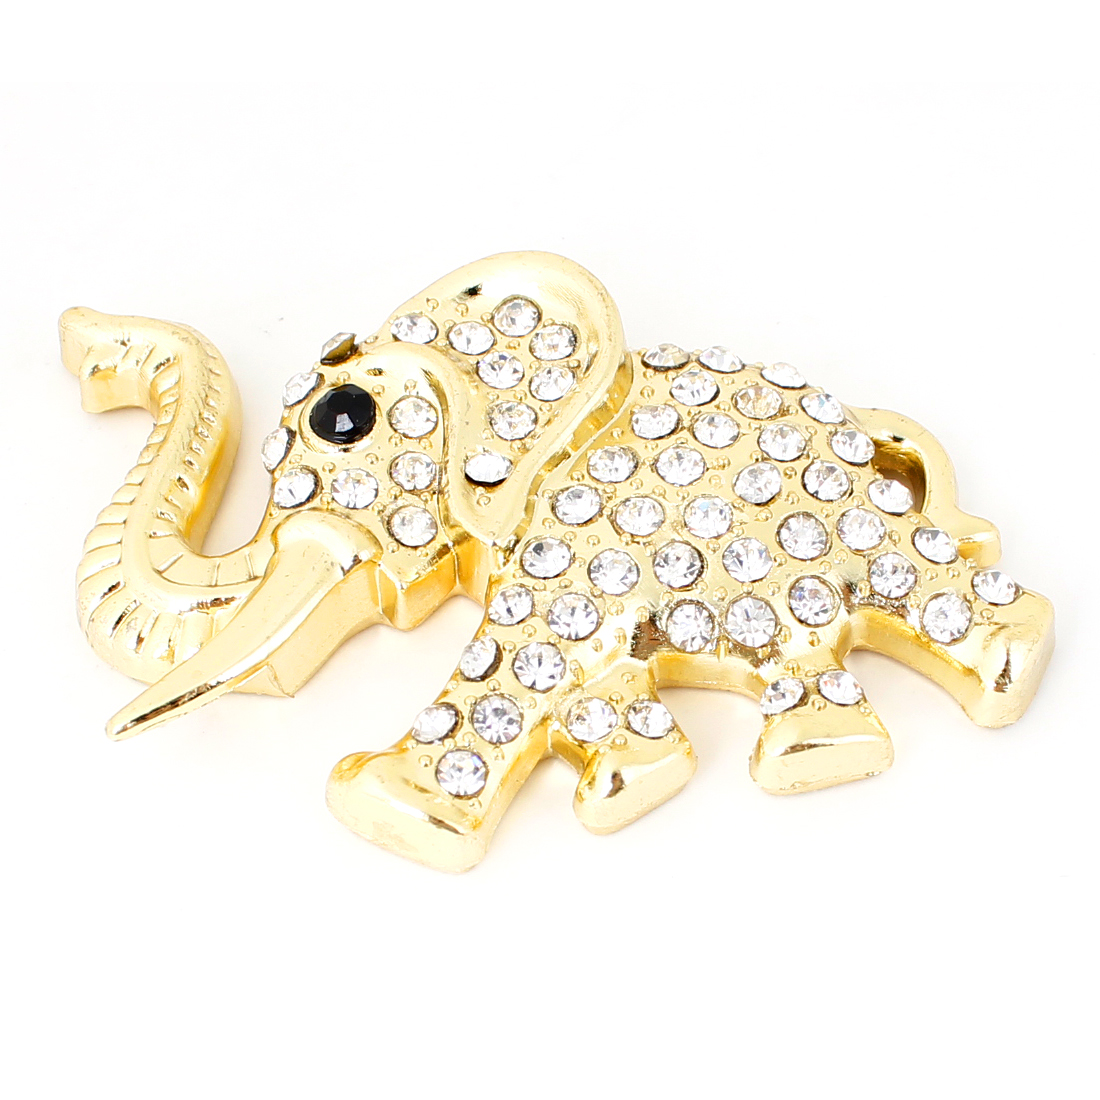 Faux Rhinestone Decor 3D Gold Tone Elephant Shape Sticker Badge Emblem for Car